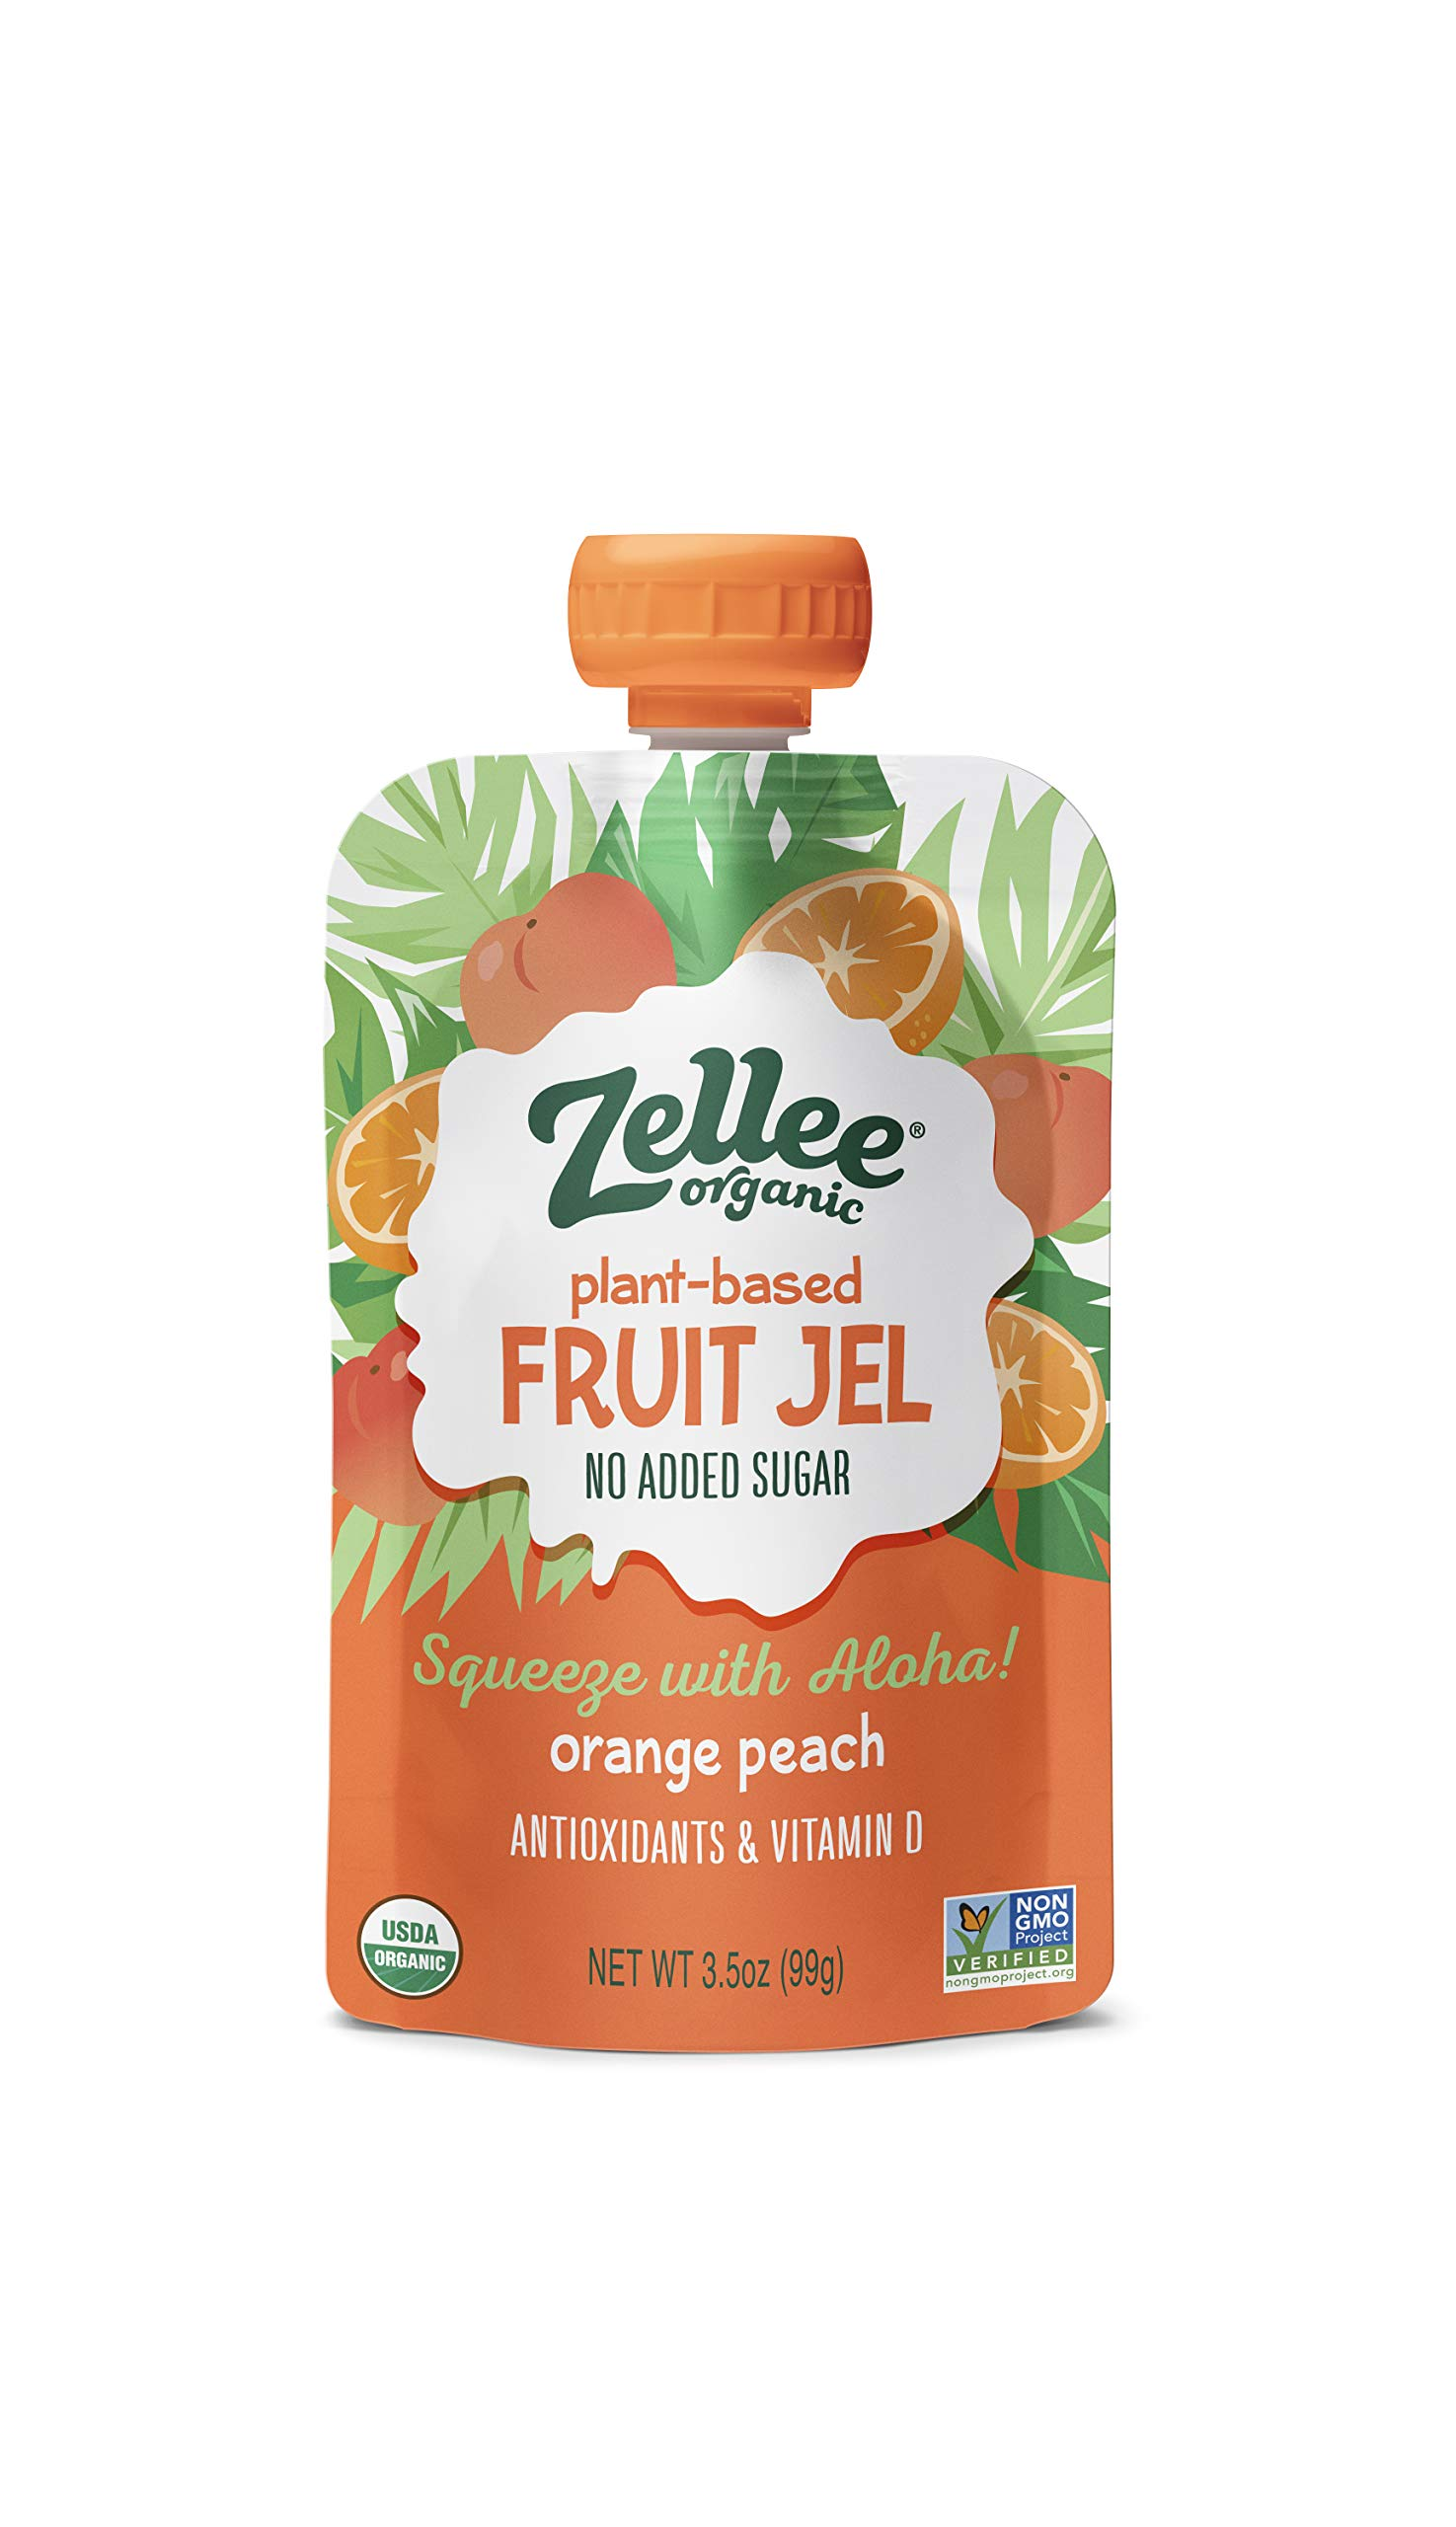 Zellee Organic Fruit Jel Pouches   Orange Peach   6 pack   Immunity Boosting Vitamins A, C & D   Gluten-Free, Vegan, Plant-Based, No Added Sugar, Antioxidant Rich   Healthy Snack for Adults & Kids